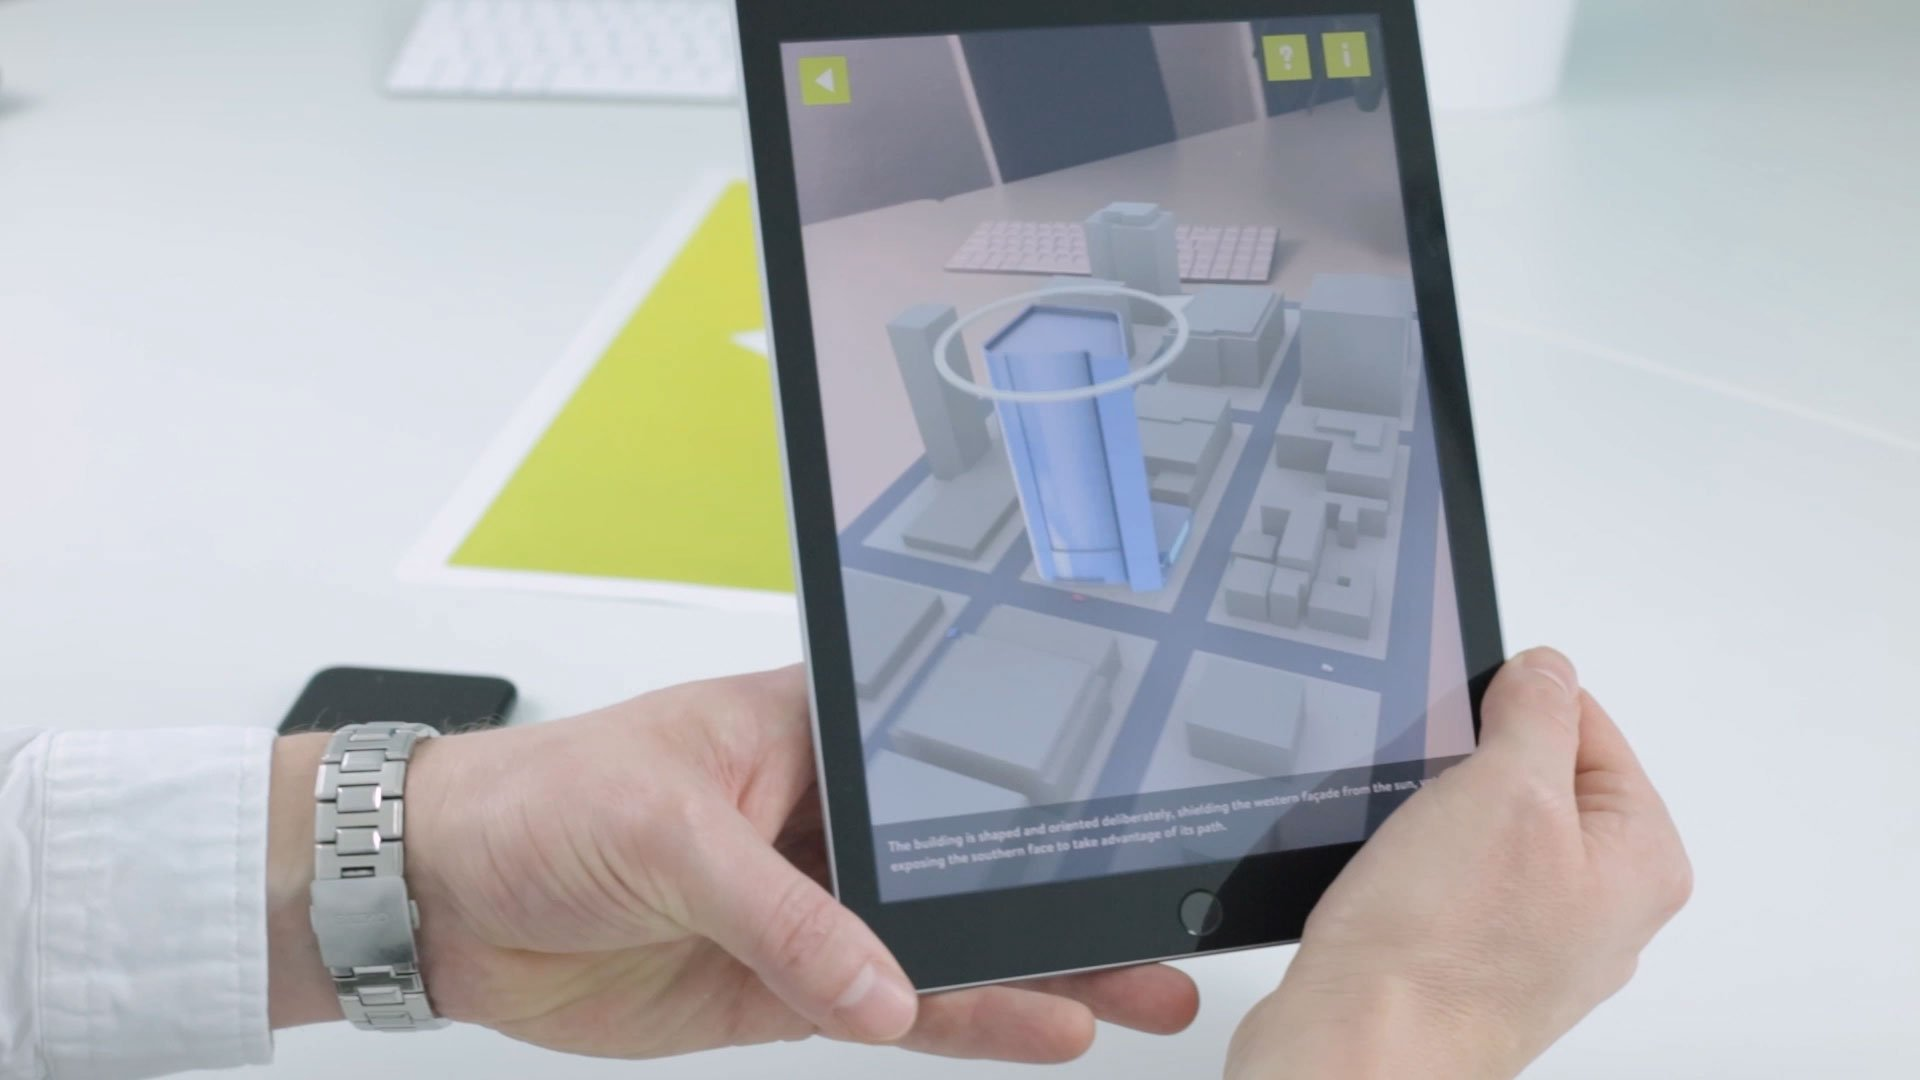 BuroHappold Augmented Reality